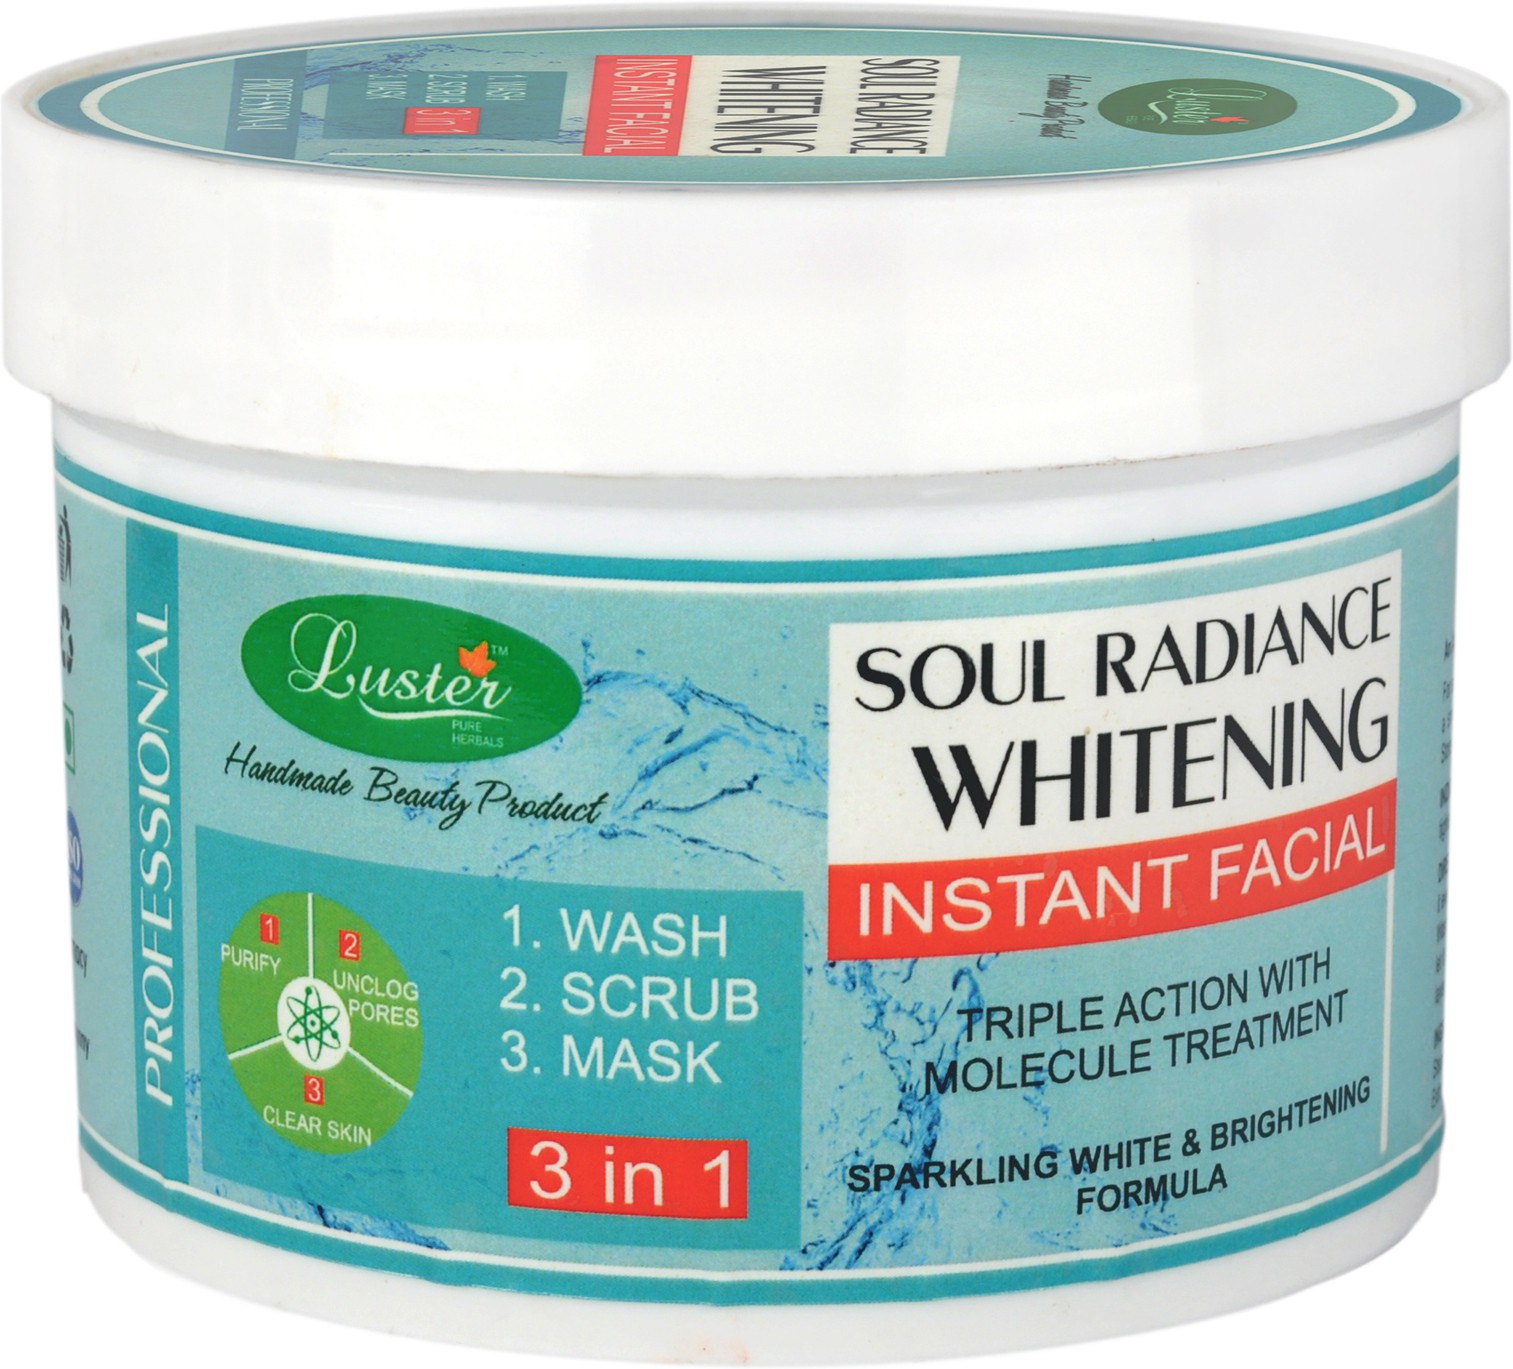 Luster Soul Radiance Whitening Instant Facial - Wash Scrub Mask Scrub(400 g)